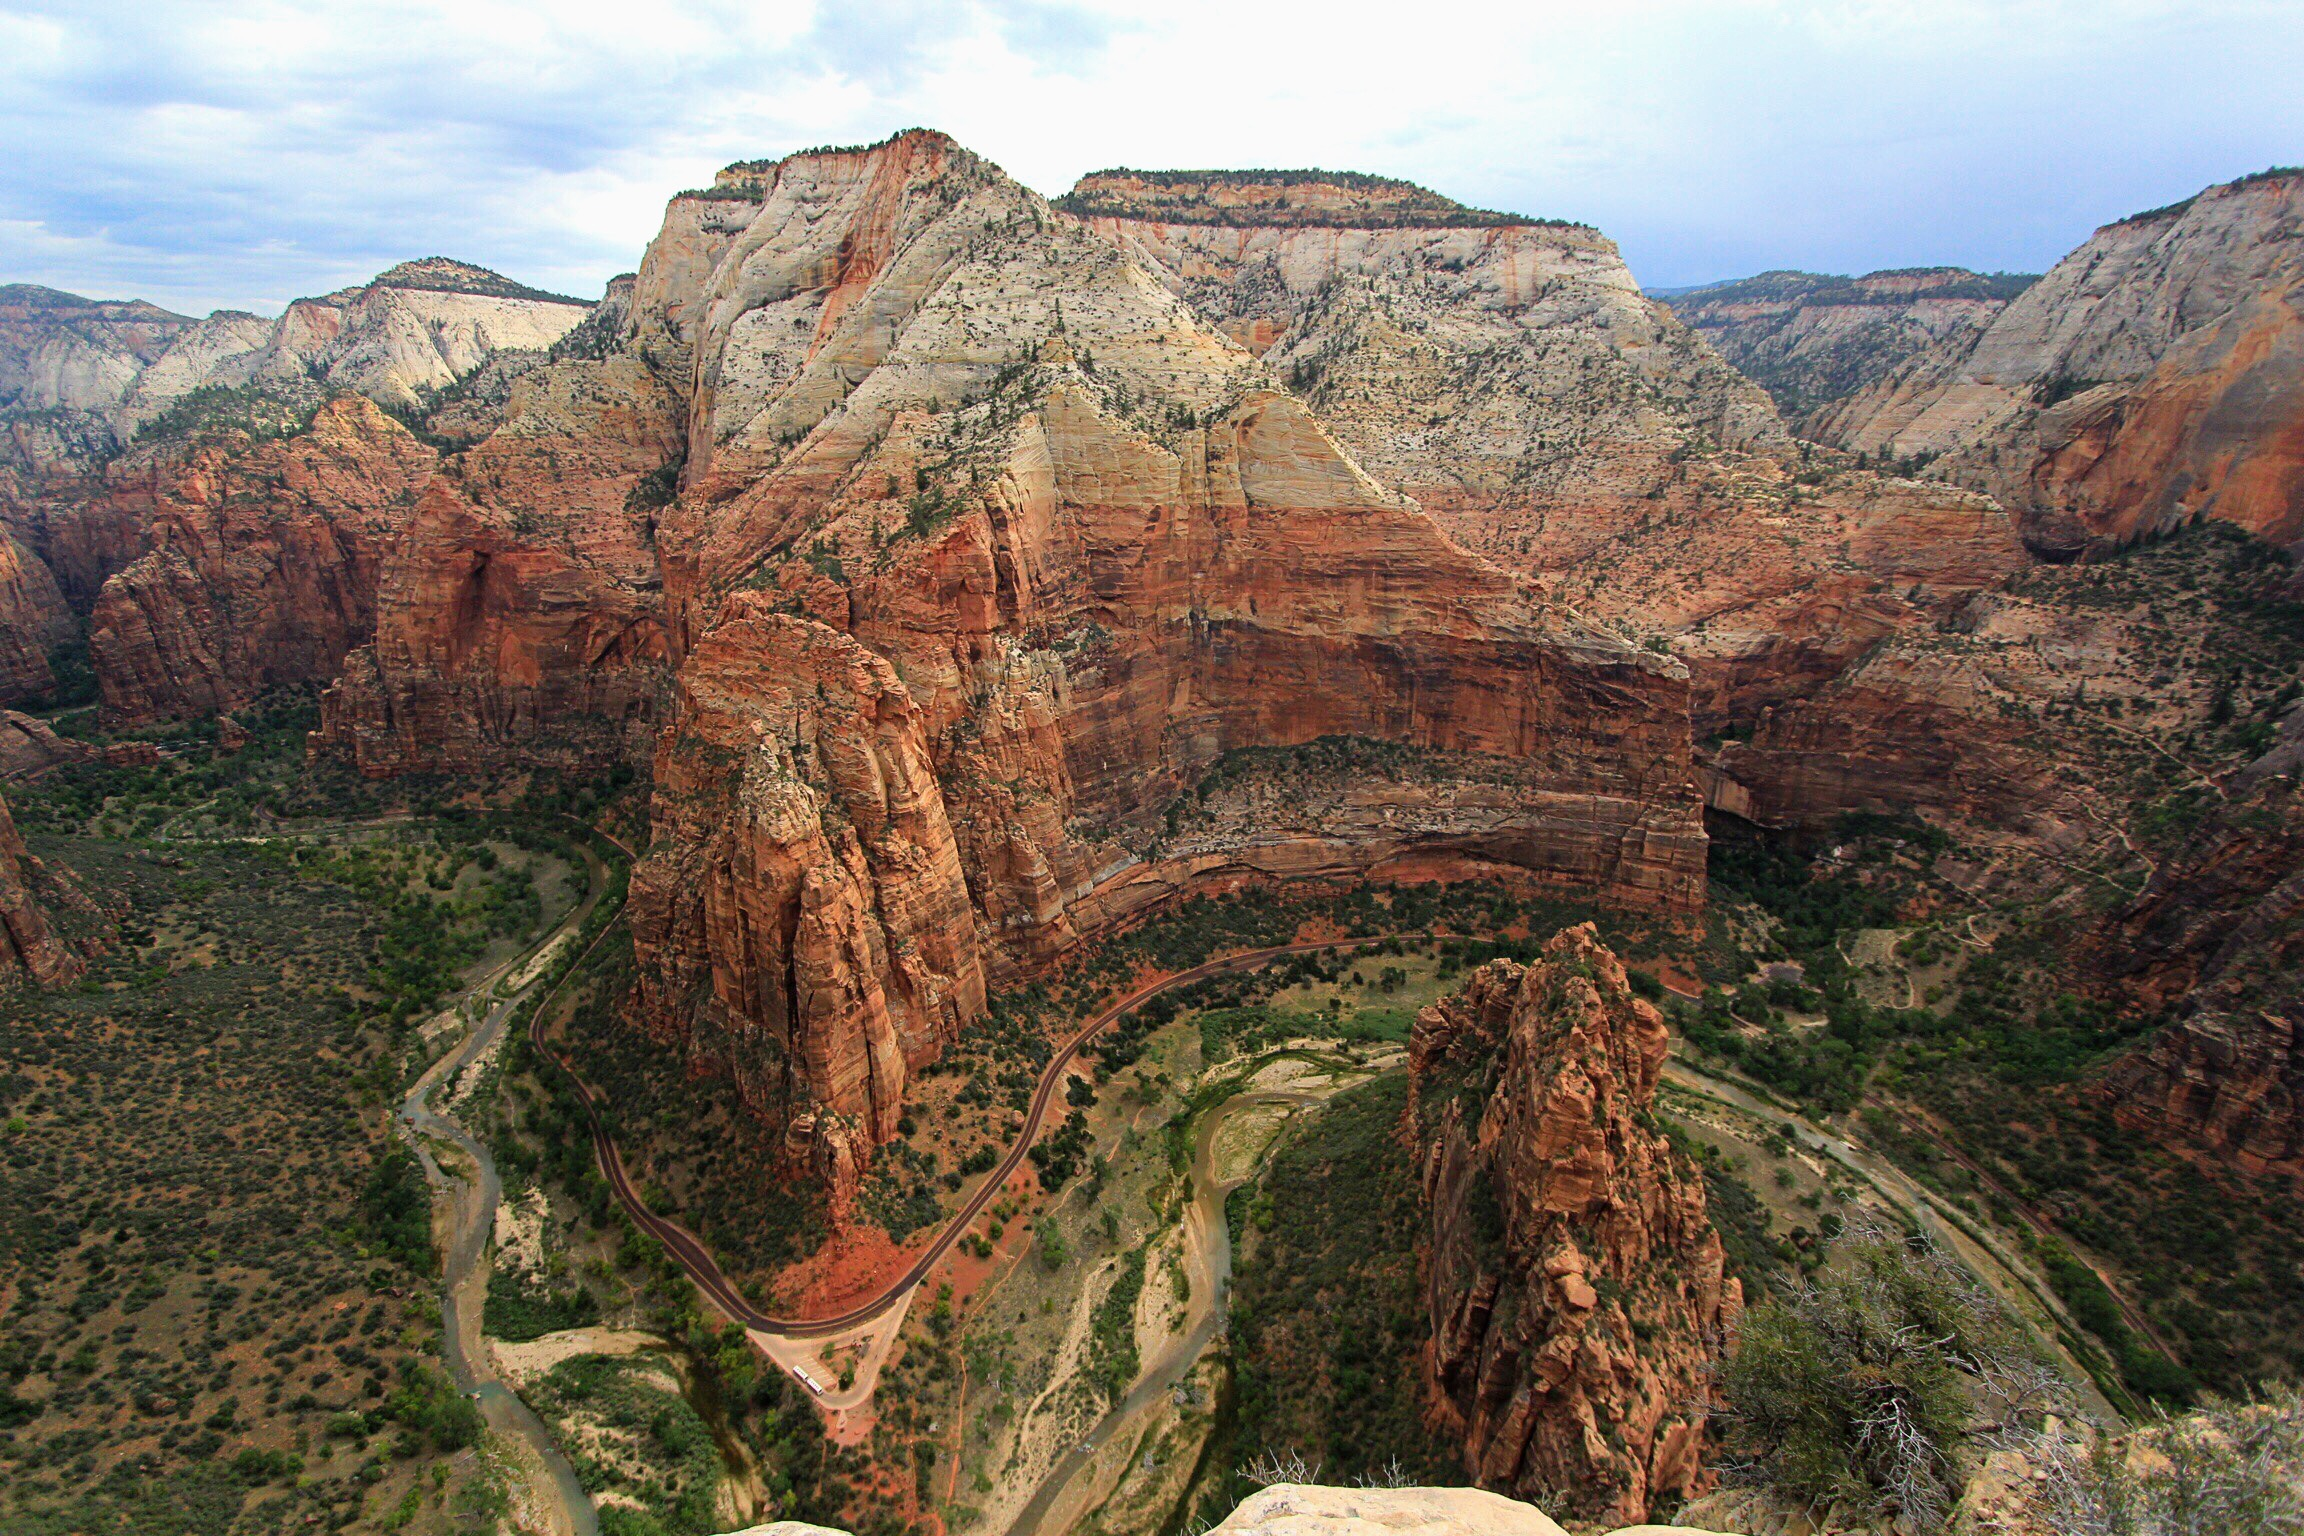 From the tip of Angels Landing, looking over the side